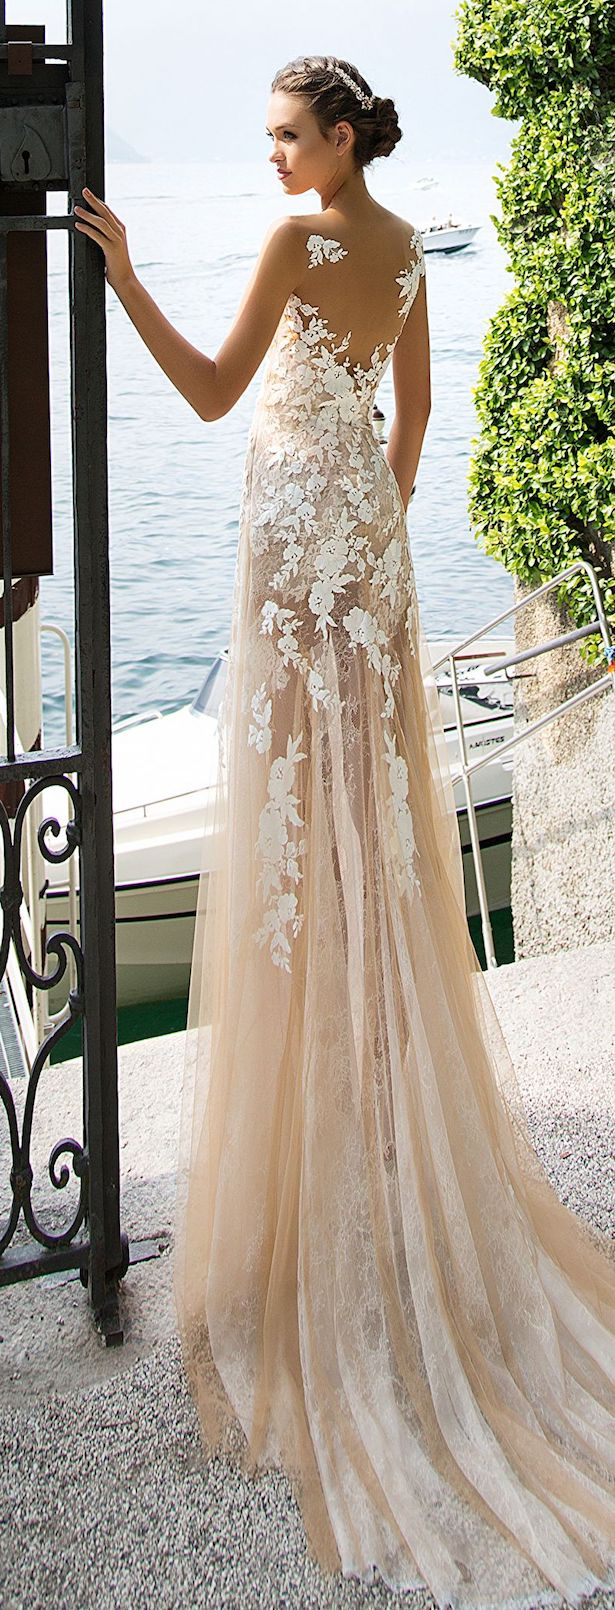 Wedding Dress by Milla Nova White Desire 2017 Bridal Collection - Vienna